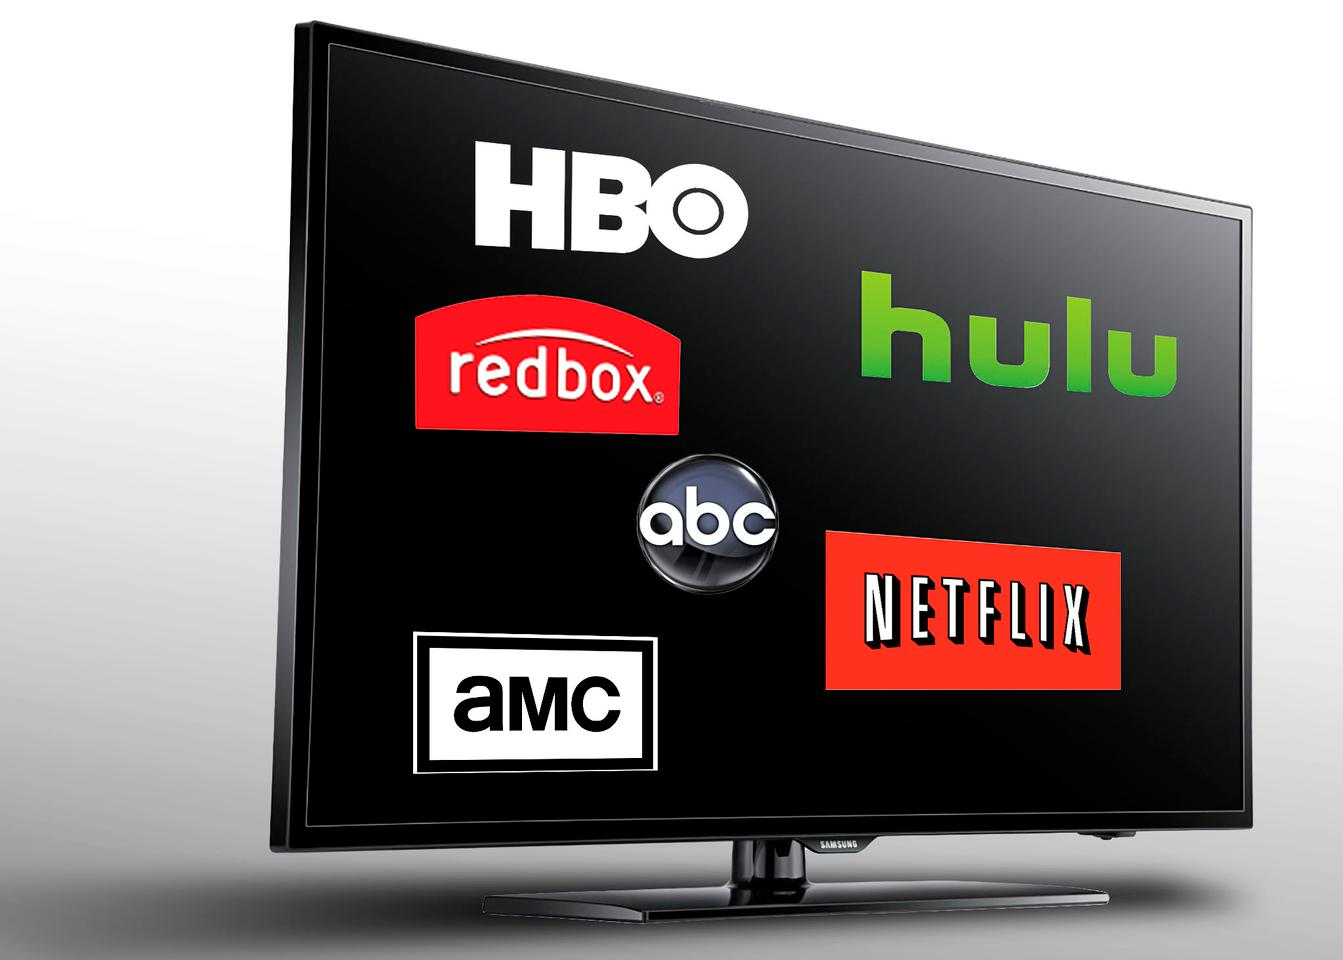 The service would allegedly blend traditional TV channels with streaming services